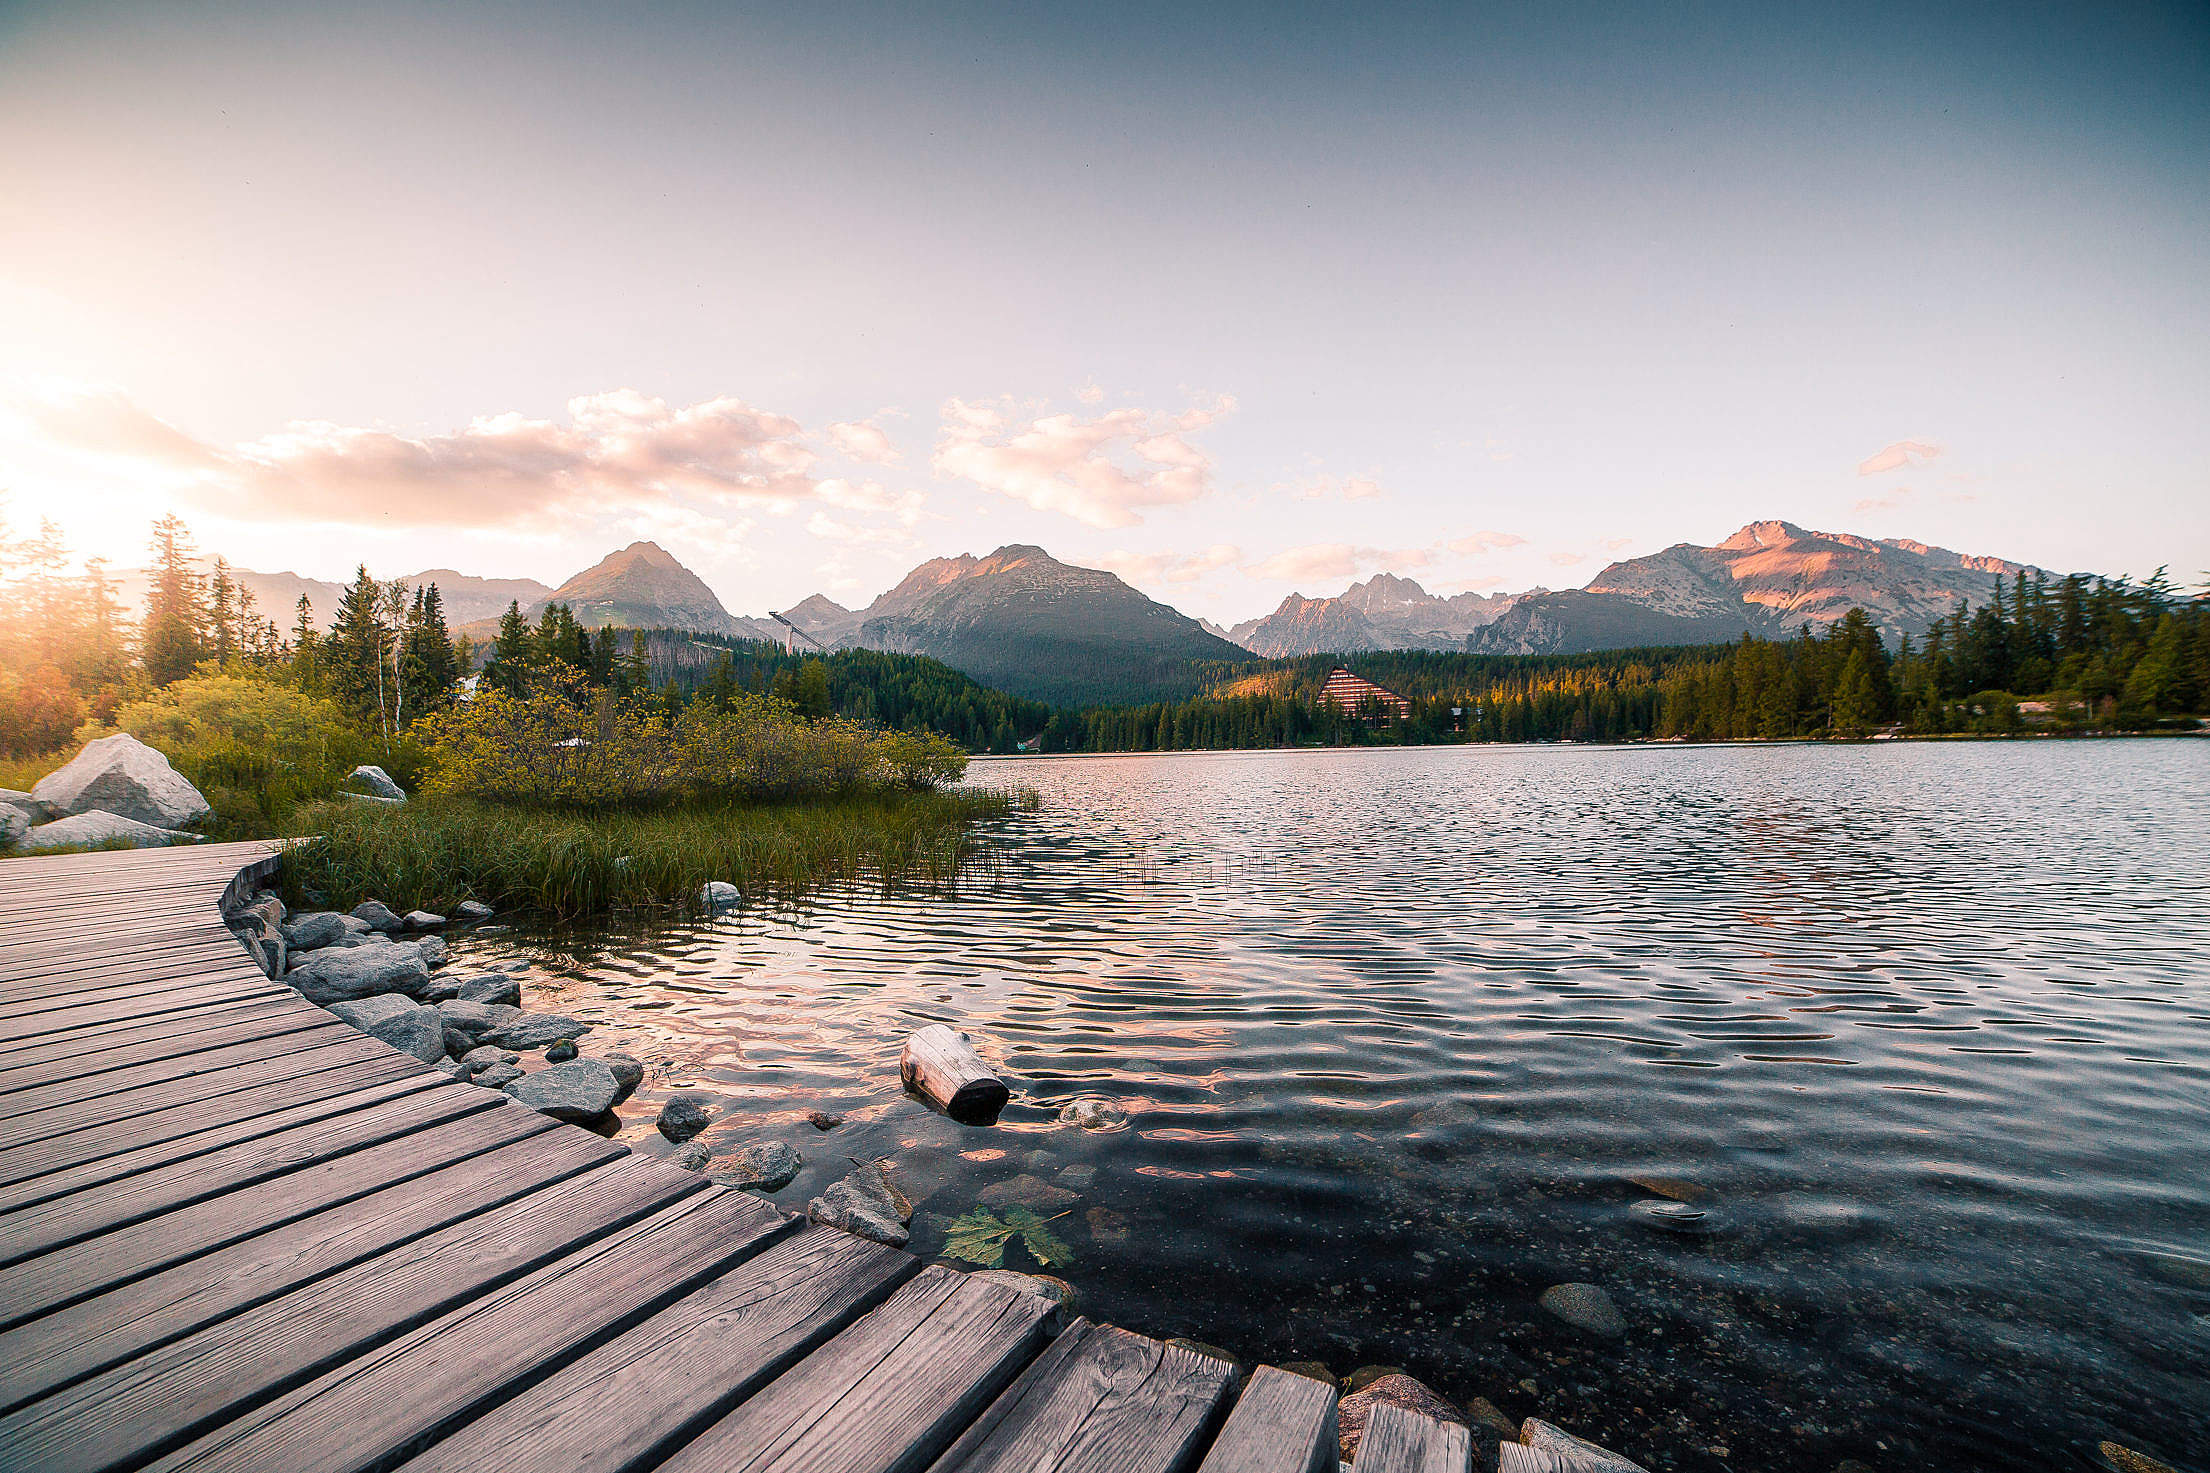 Evening Lake Side in High Tatras Mountains Free Stock Photo